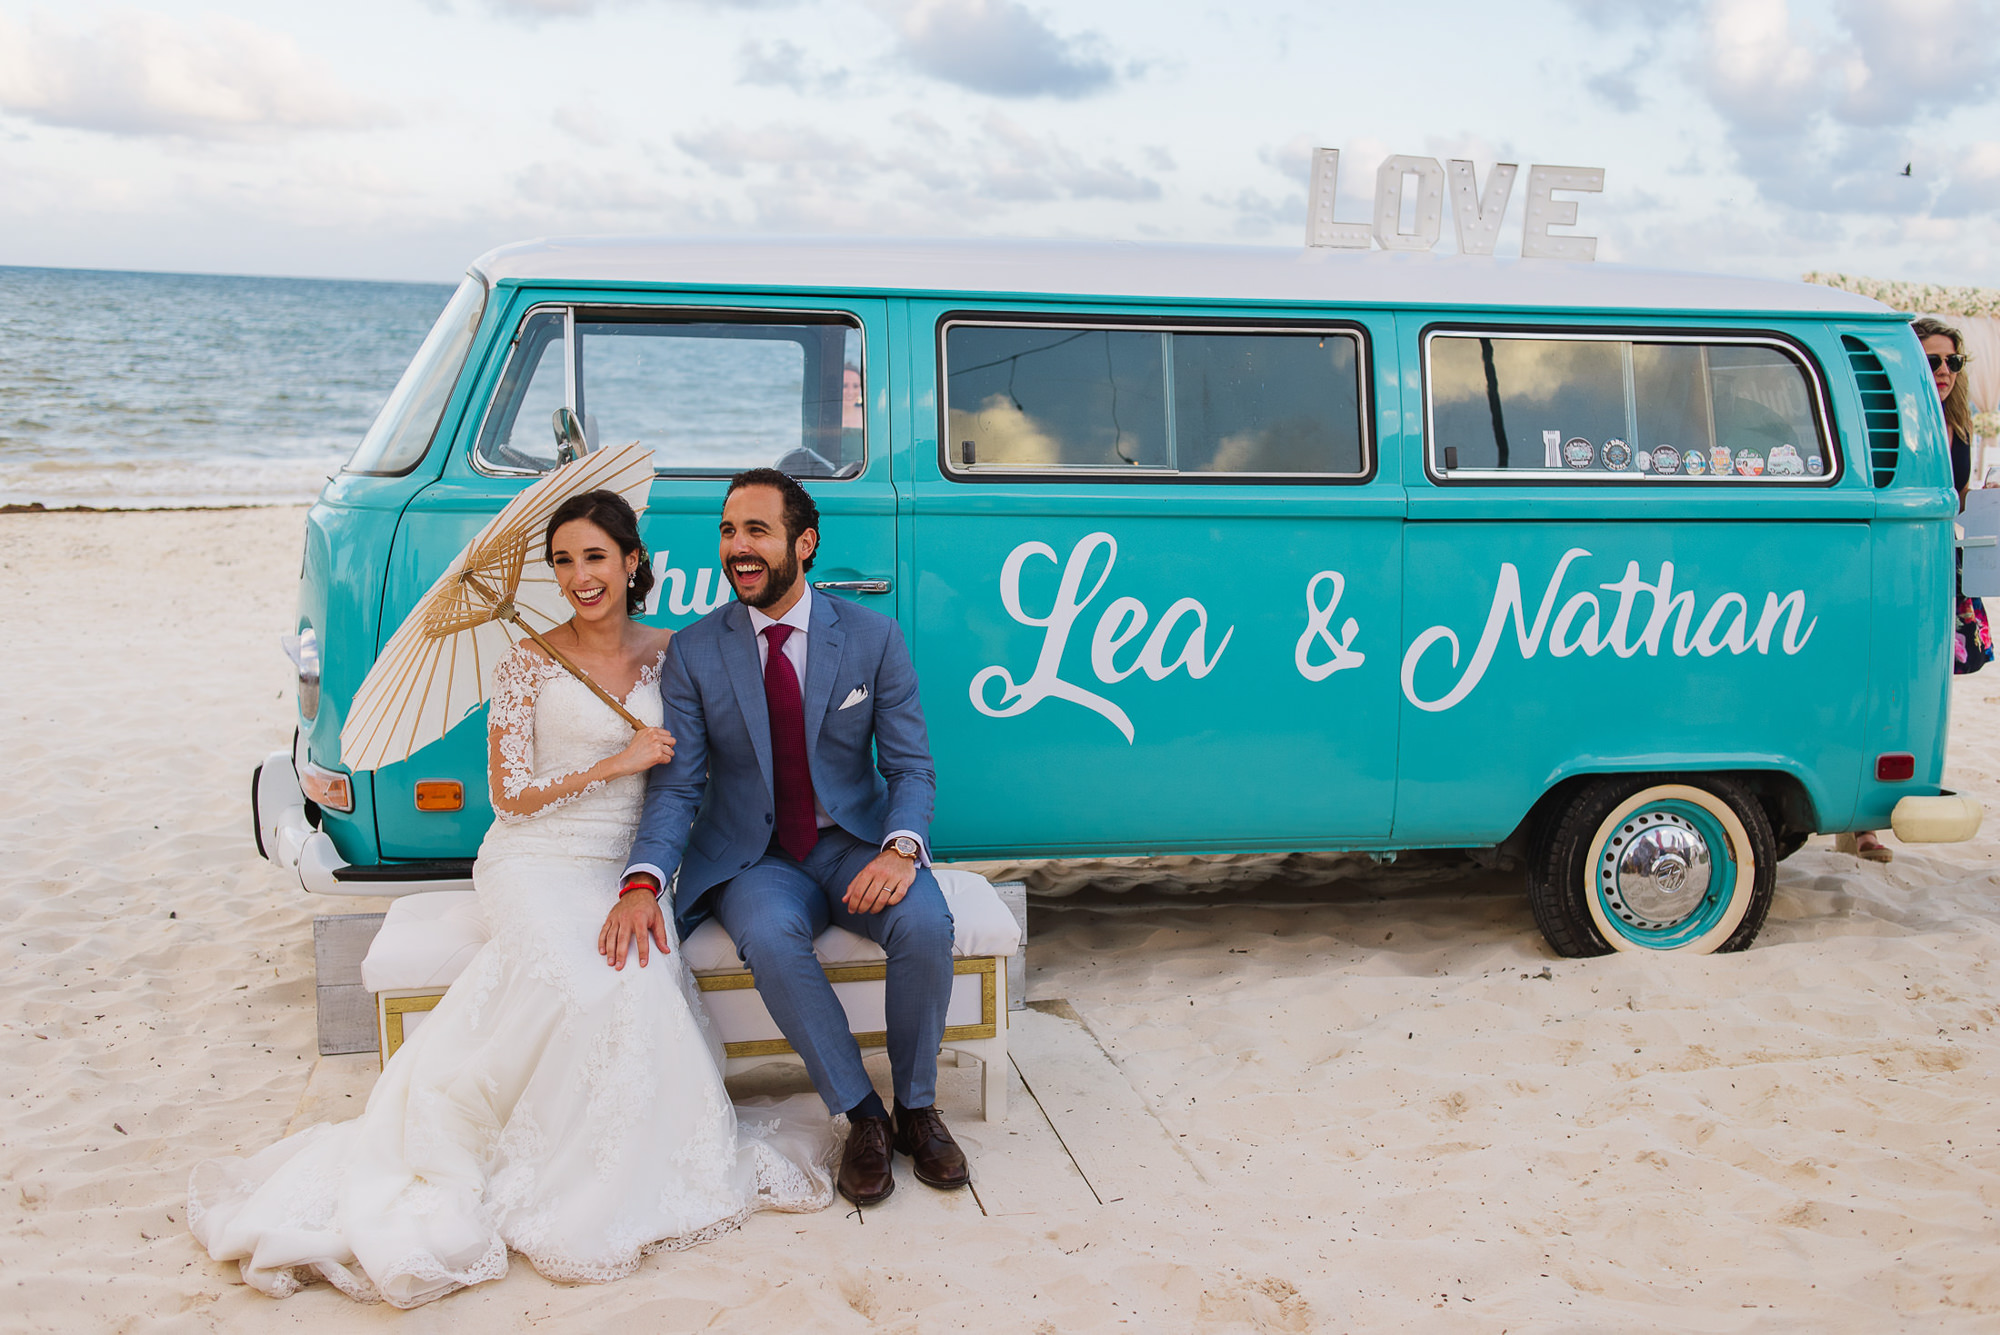 Beach wedding elopement portrait in front of customized van - photo by Citlalli Rico